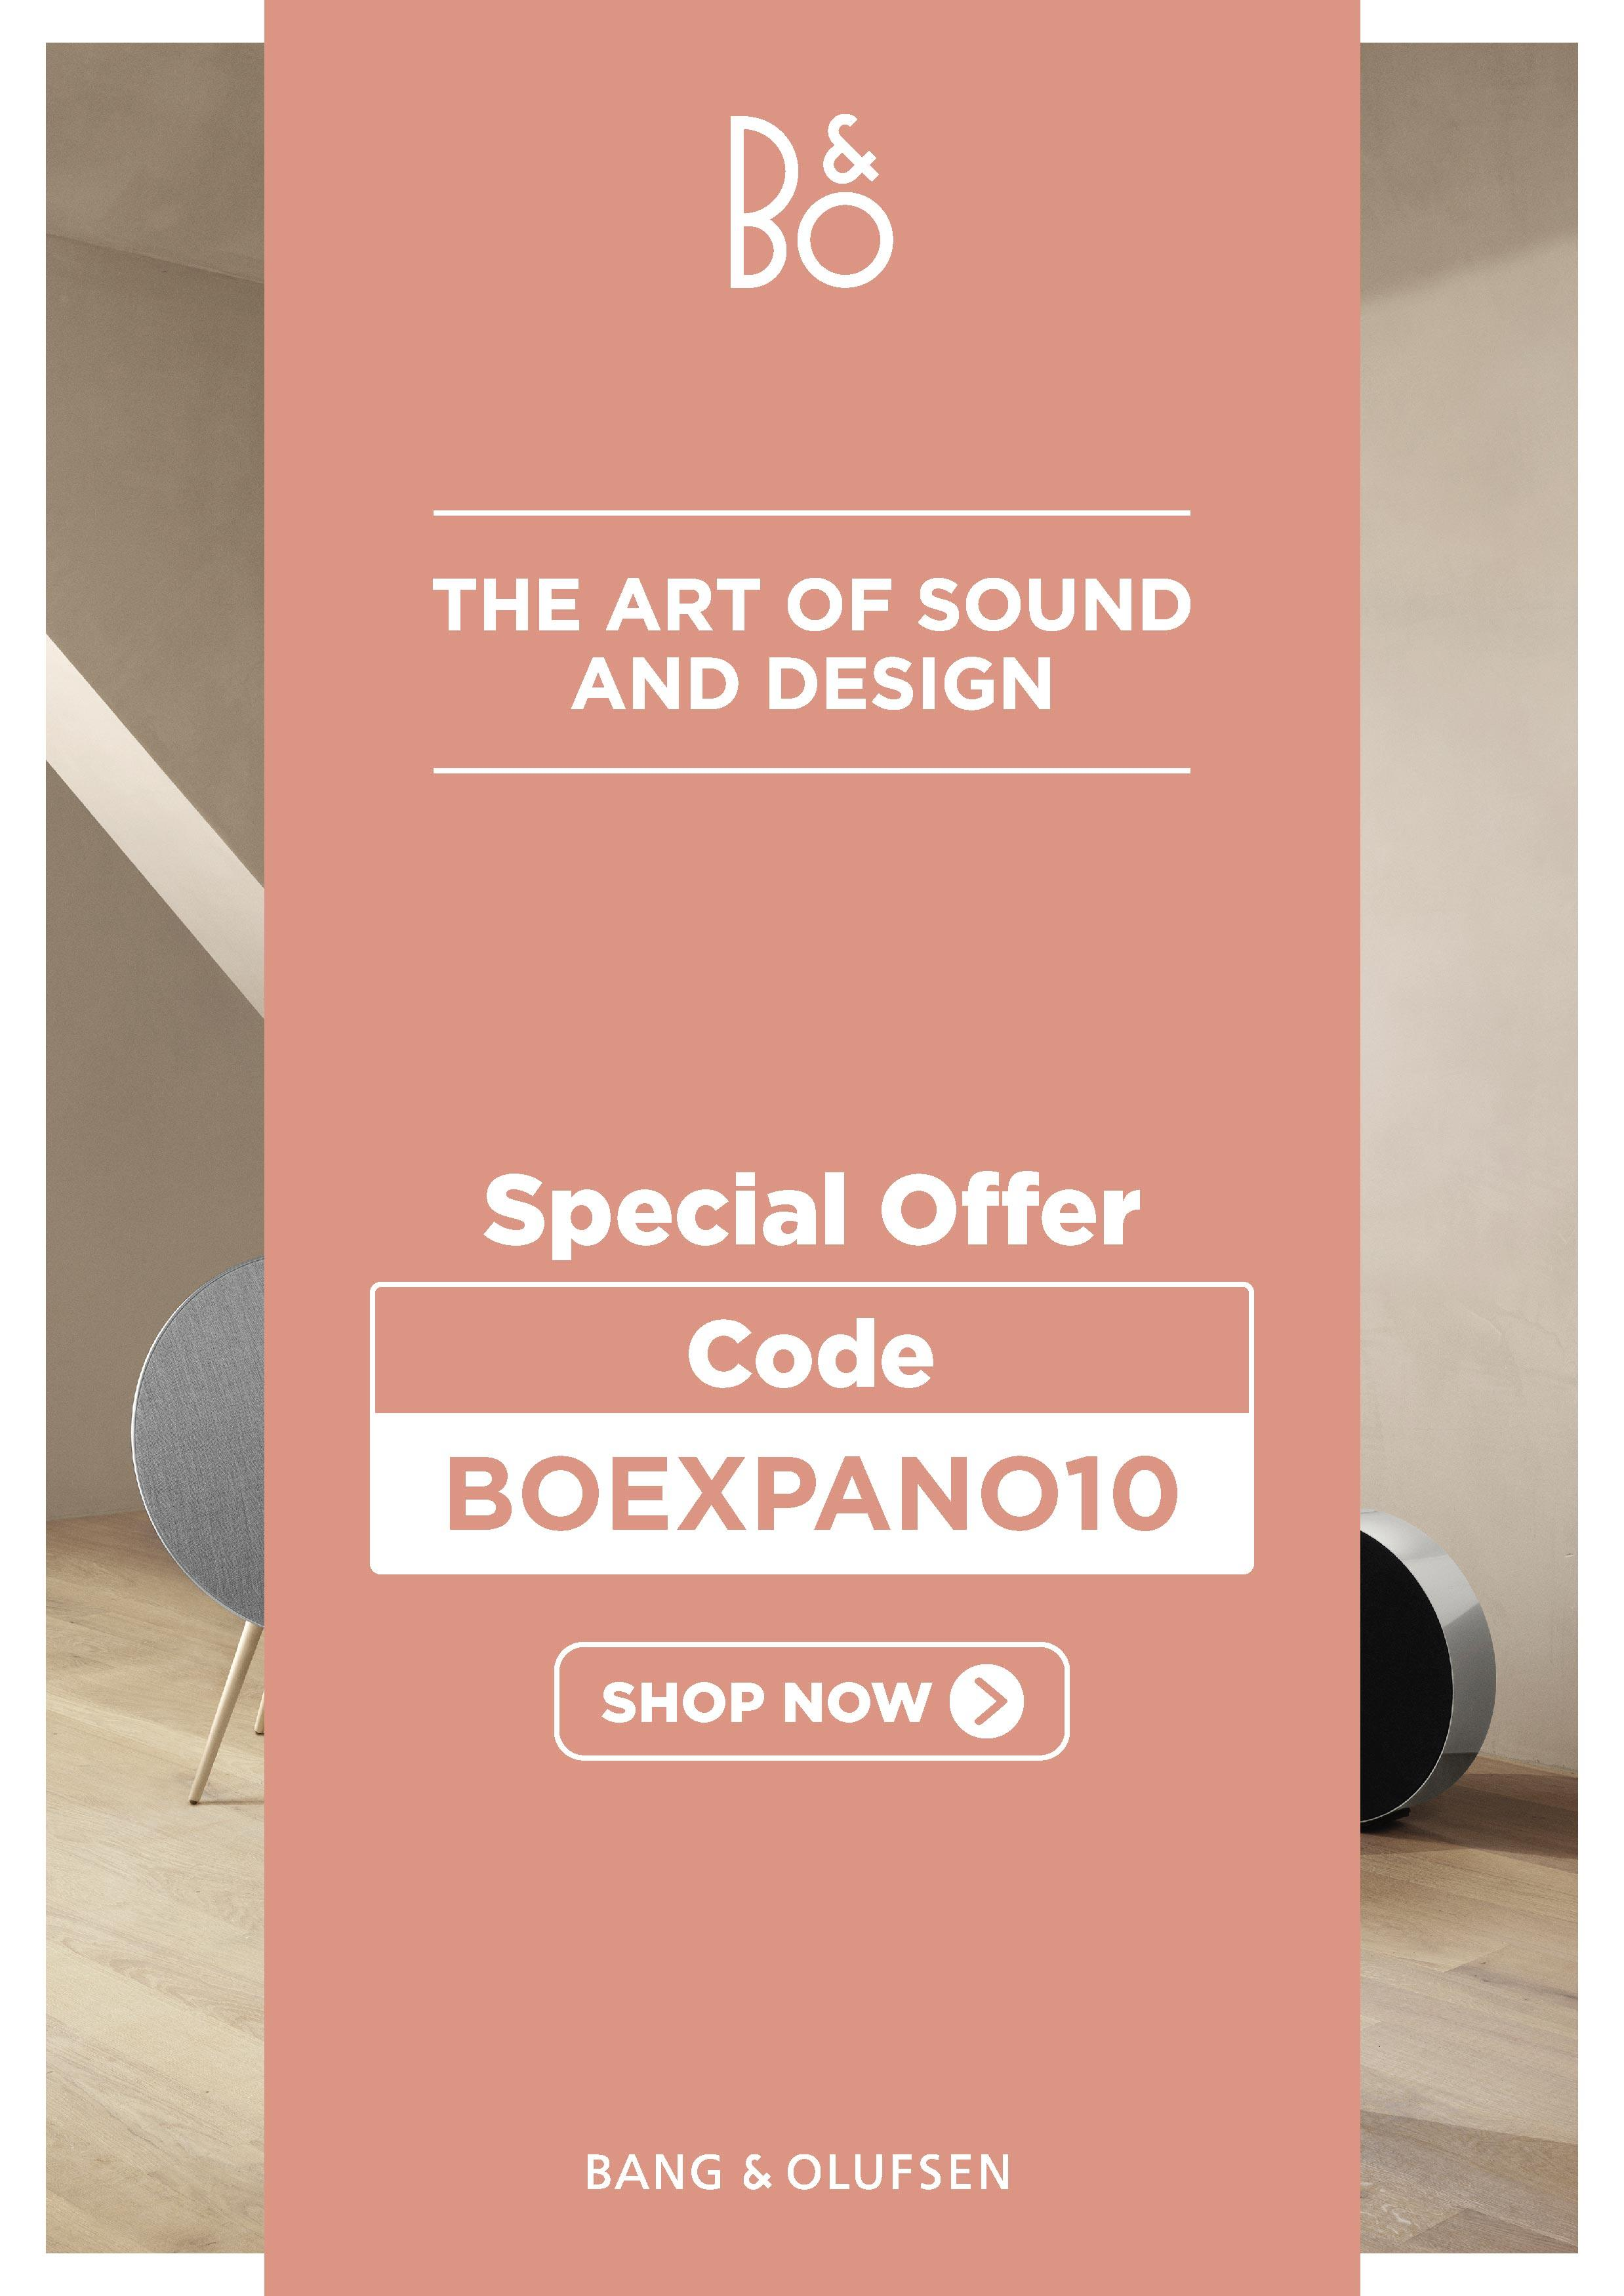 THE ART OF SOUND AND DESIGN